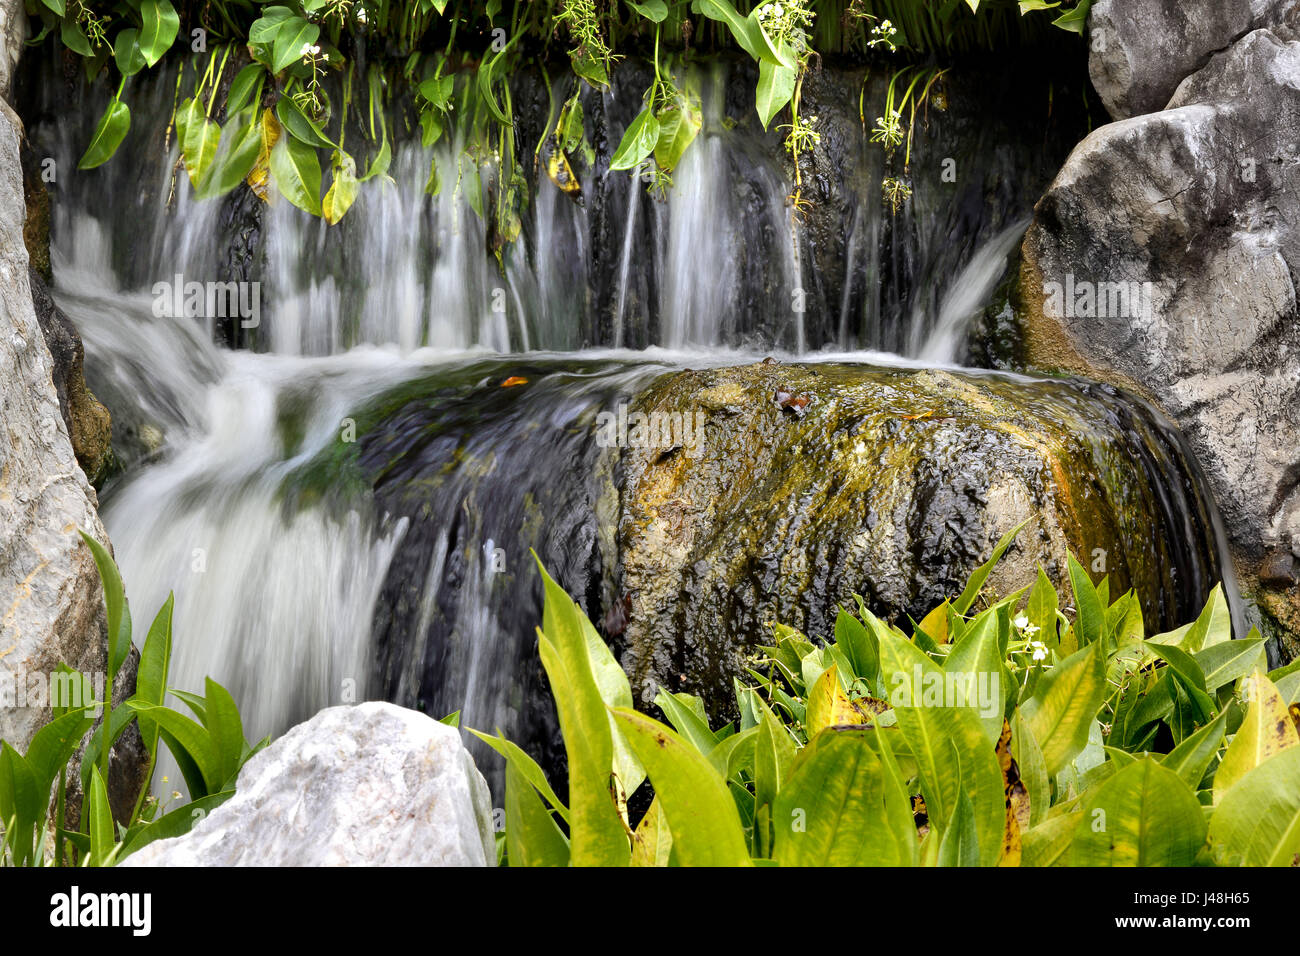 A small waterfall in the 'Chinese Garden of Friendship' in Sydney, Australia - Stock Image